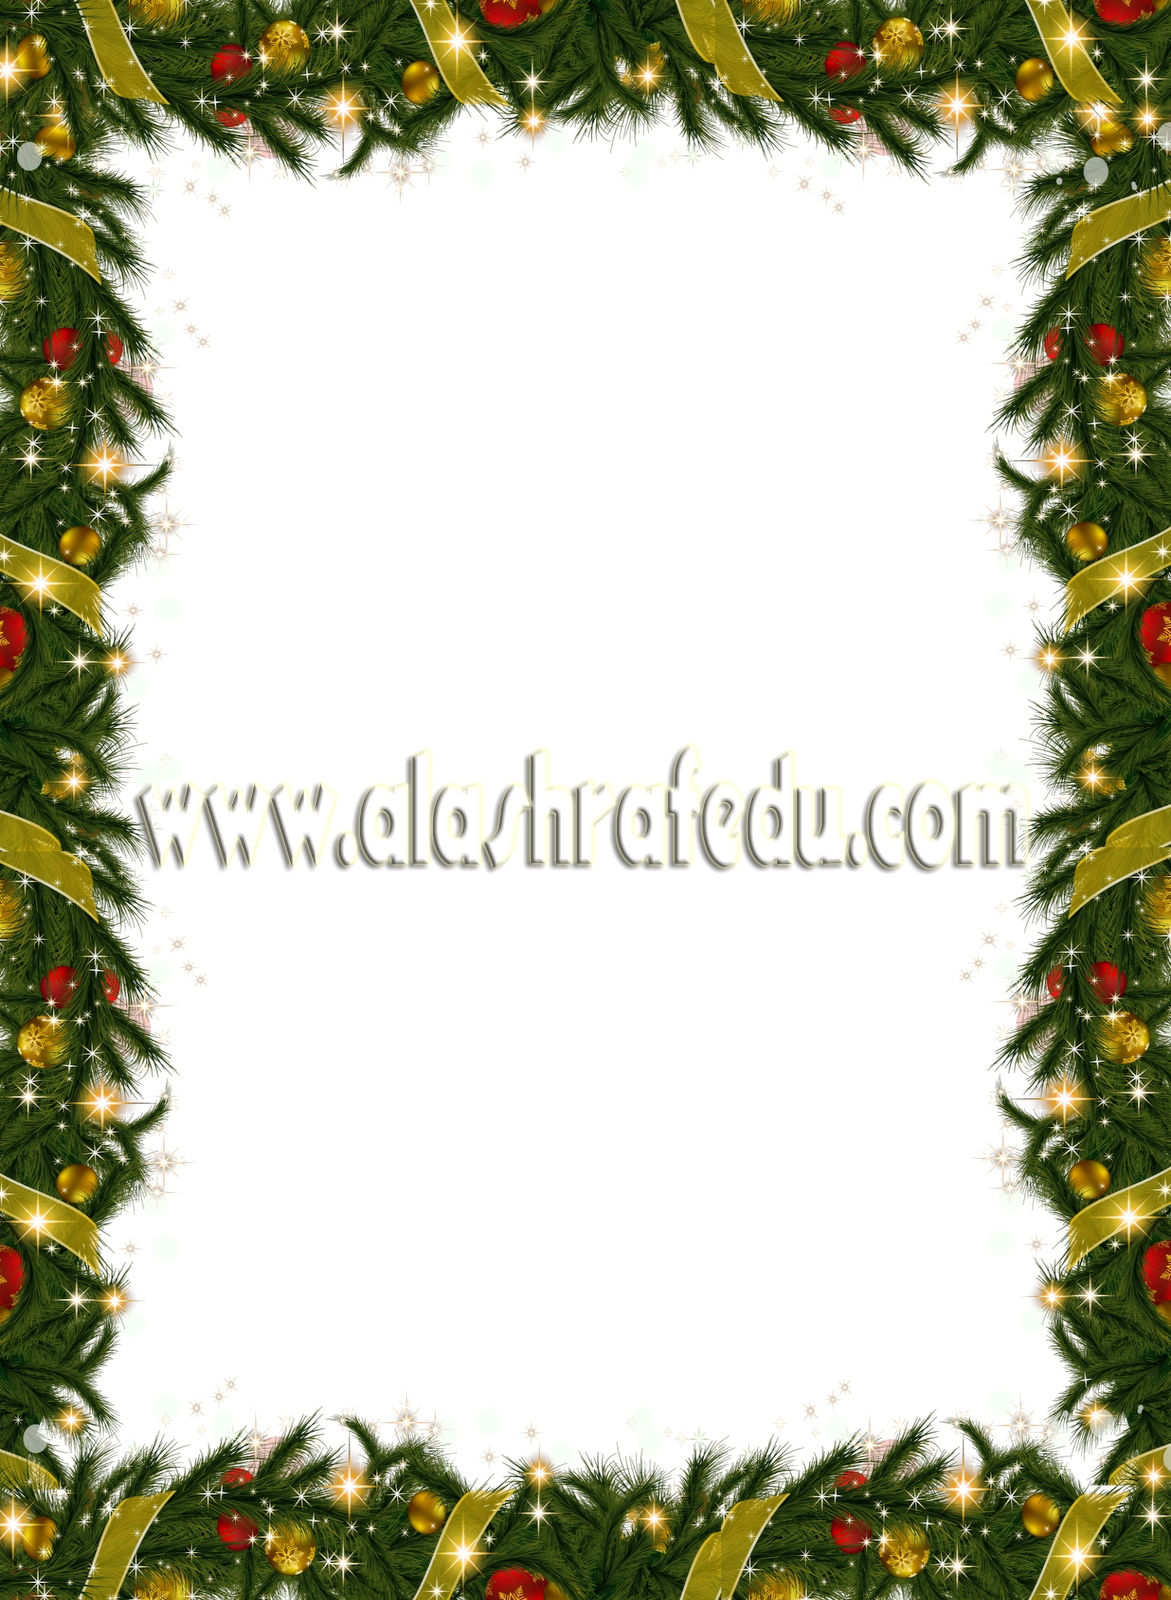 Christmas Holiday Frame With Garland www.alashrafedu.com1